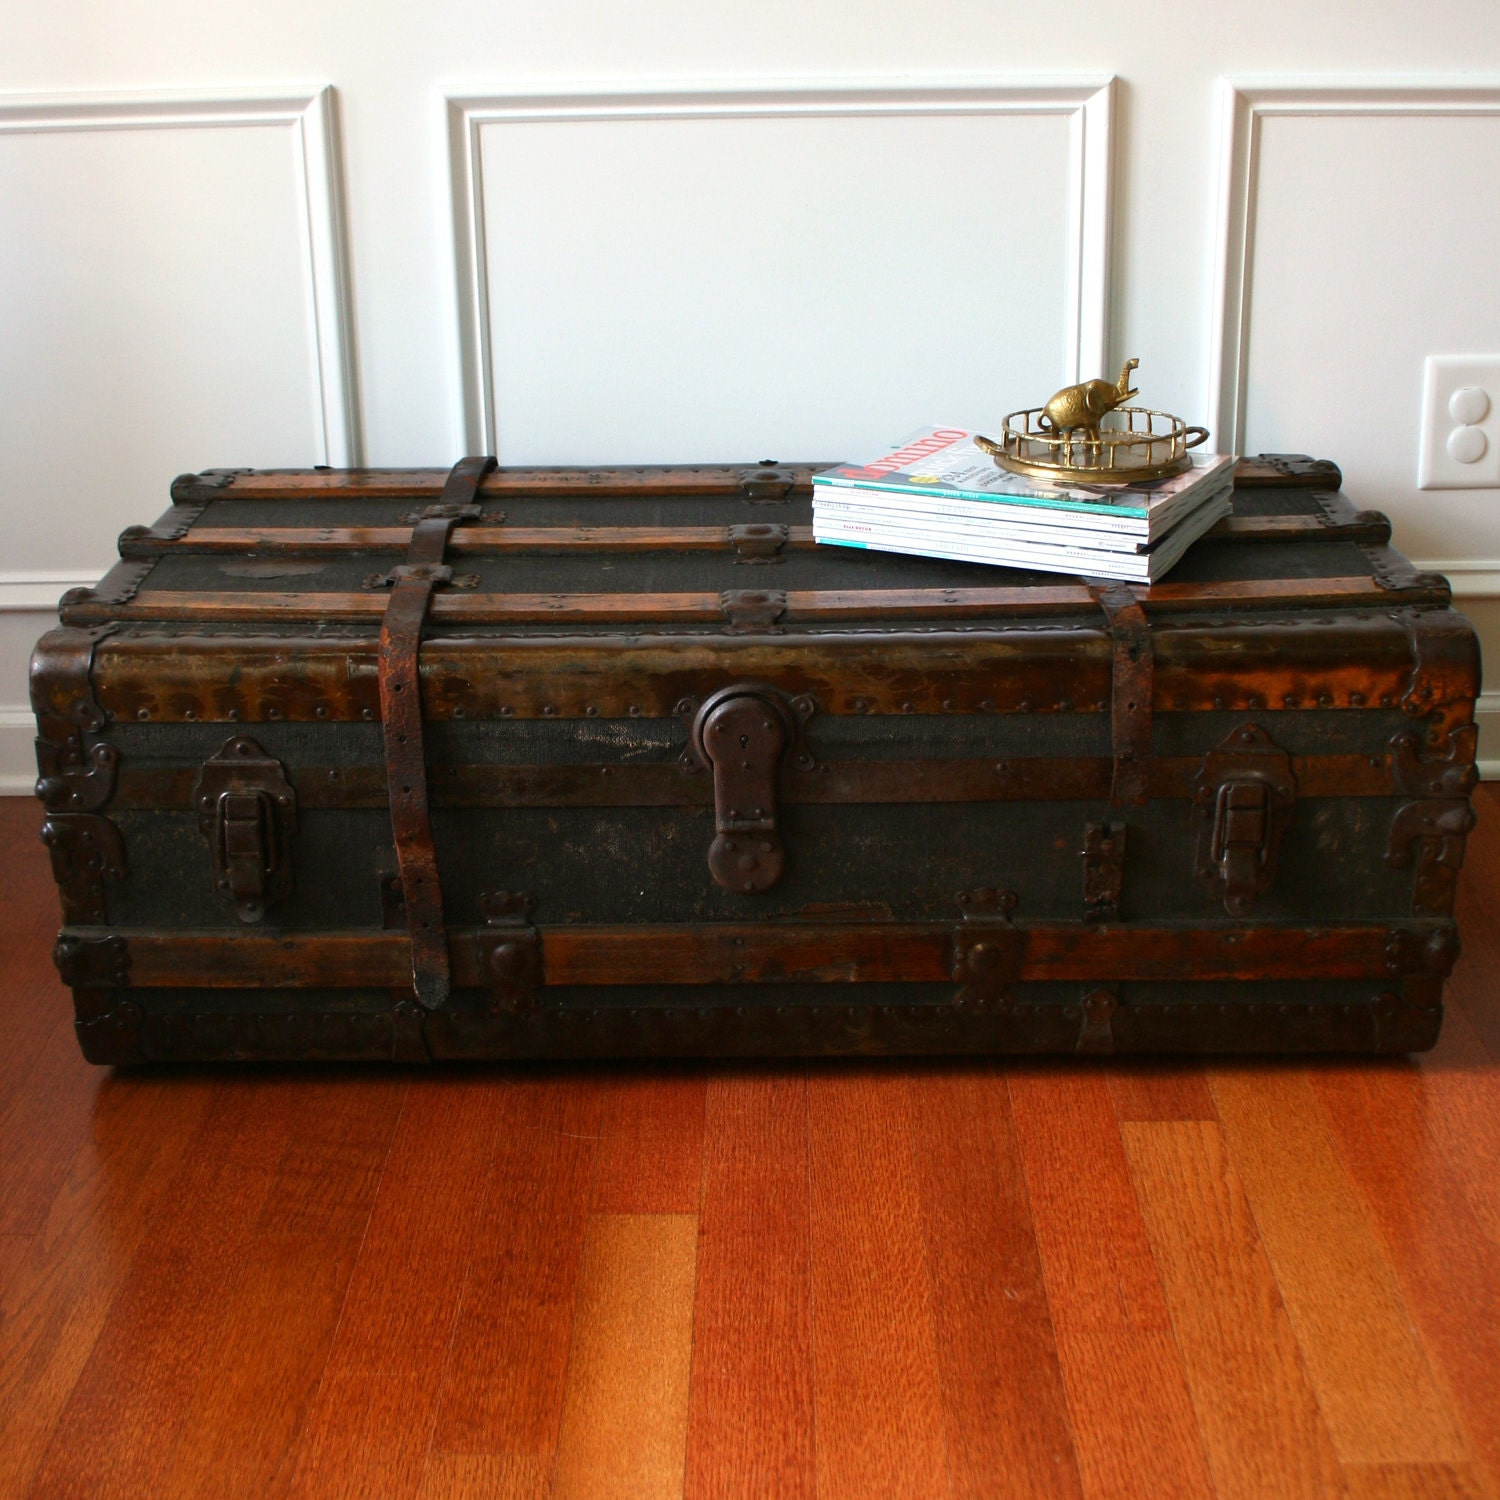 Beige Trunk Coffee Table: Huge Antique Steamer Trunk. Coffee Table. Flat Top. Canvas